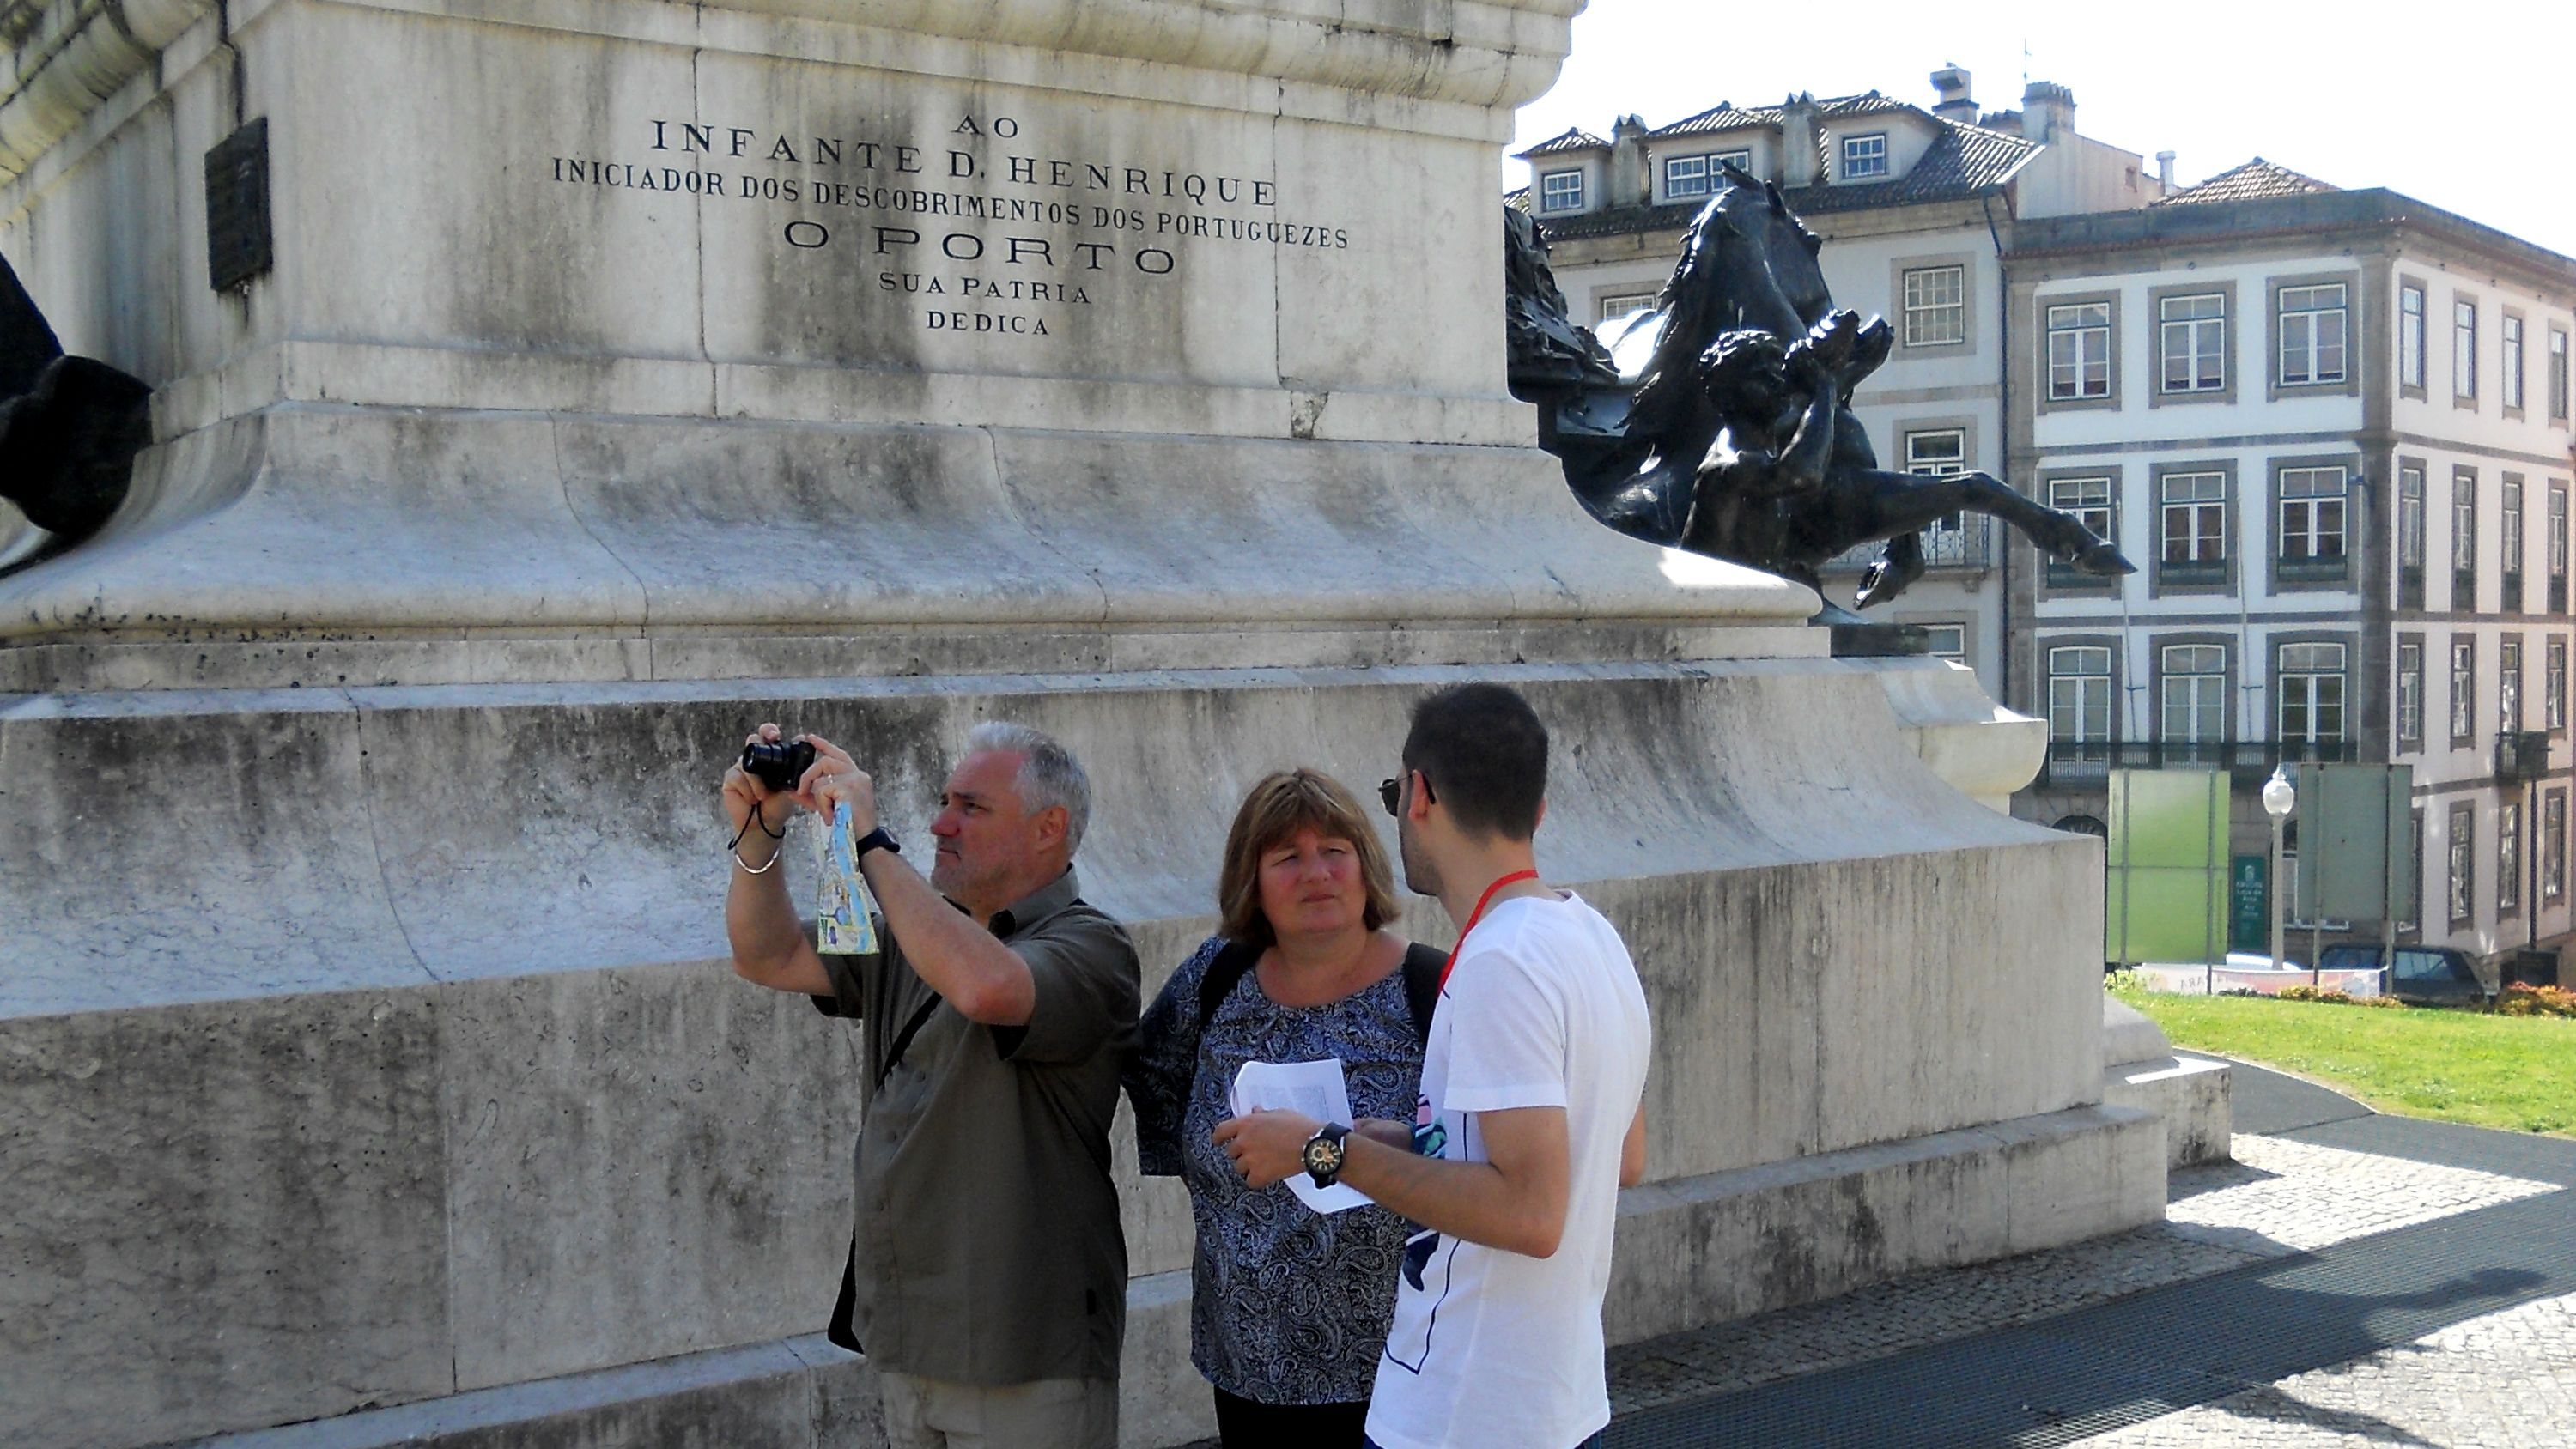 Tour group next to a statue in Portugal